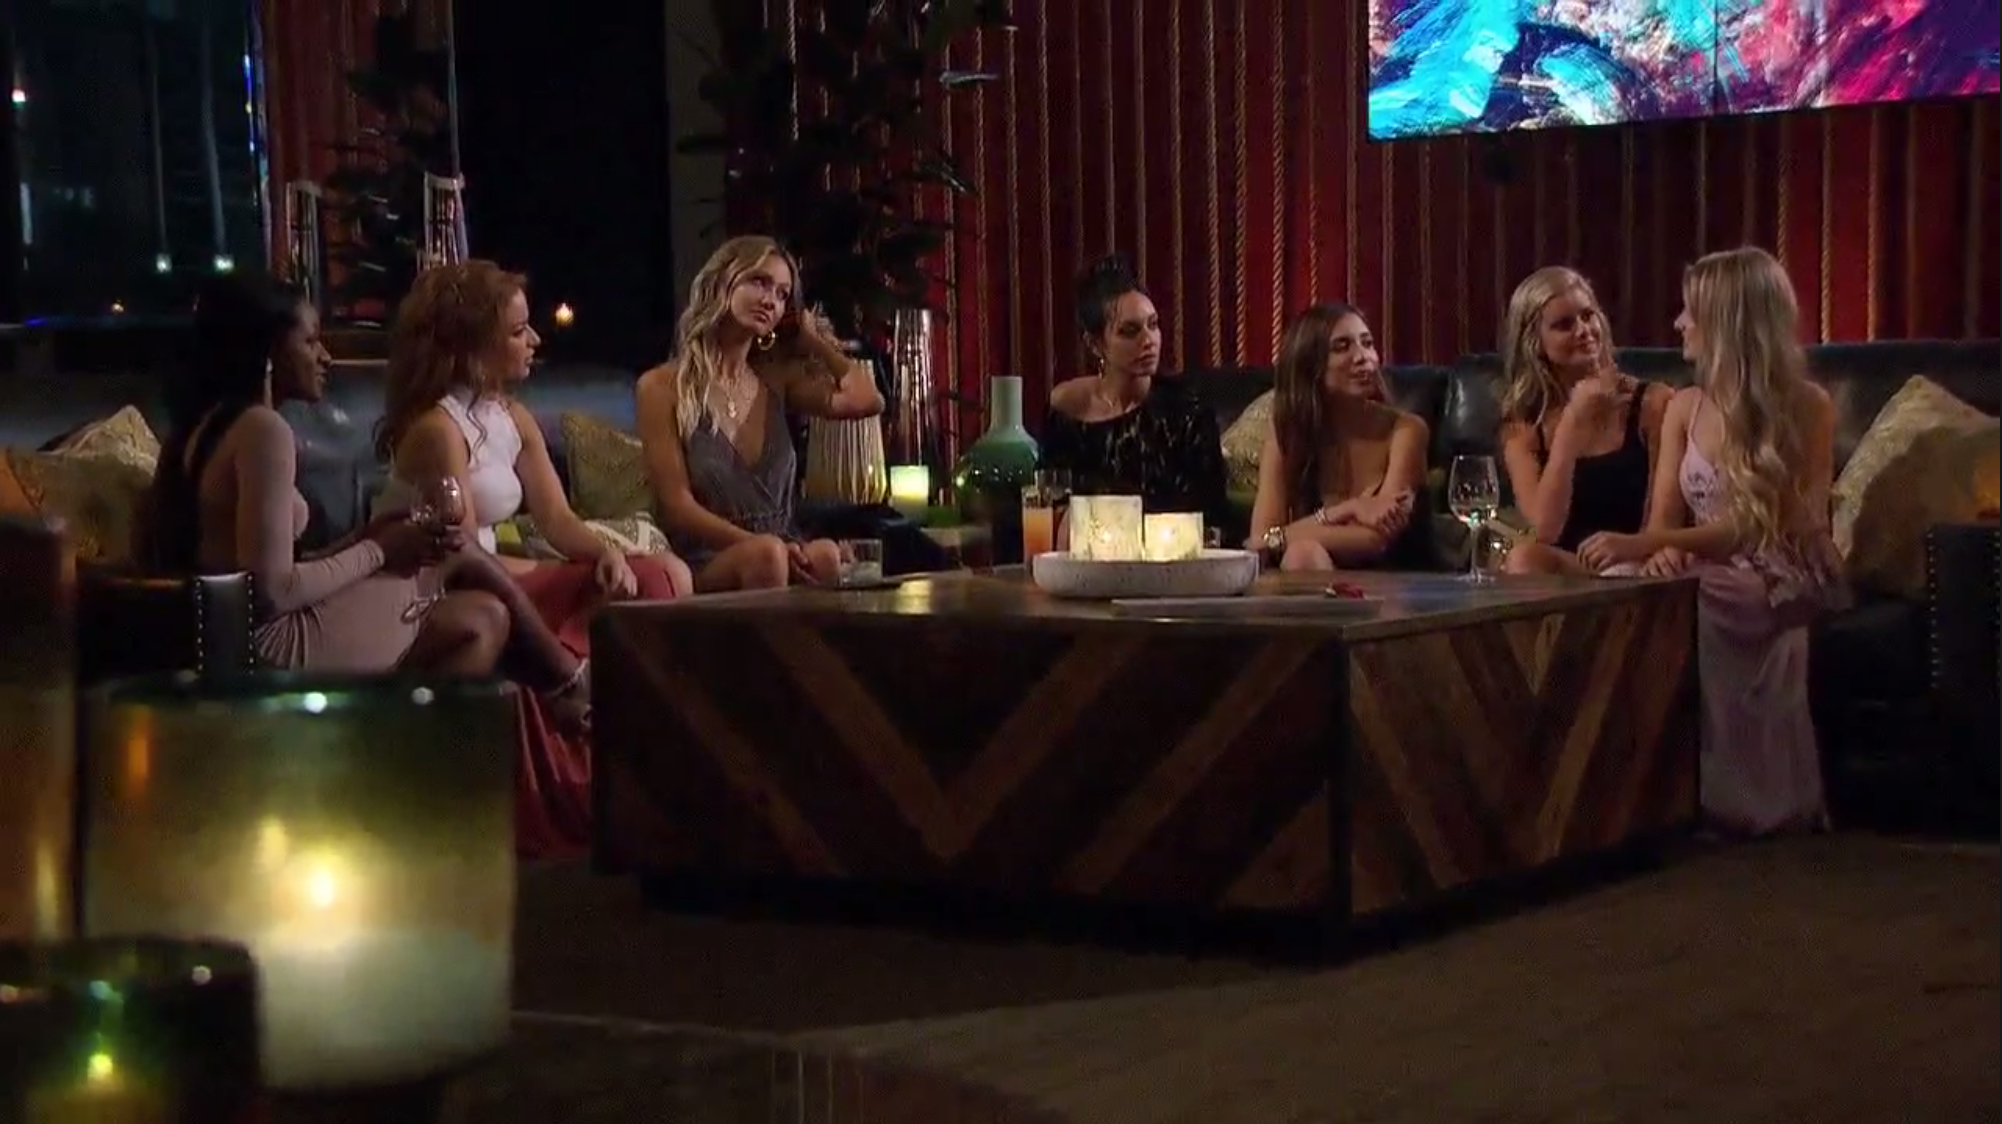 Contestants from The Bachelor Season 23 Episode 2